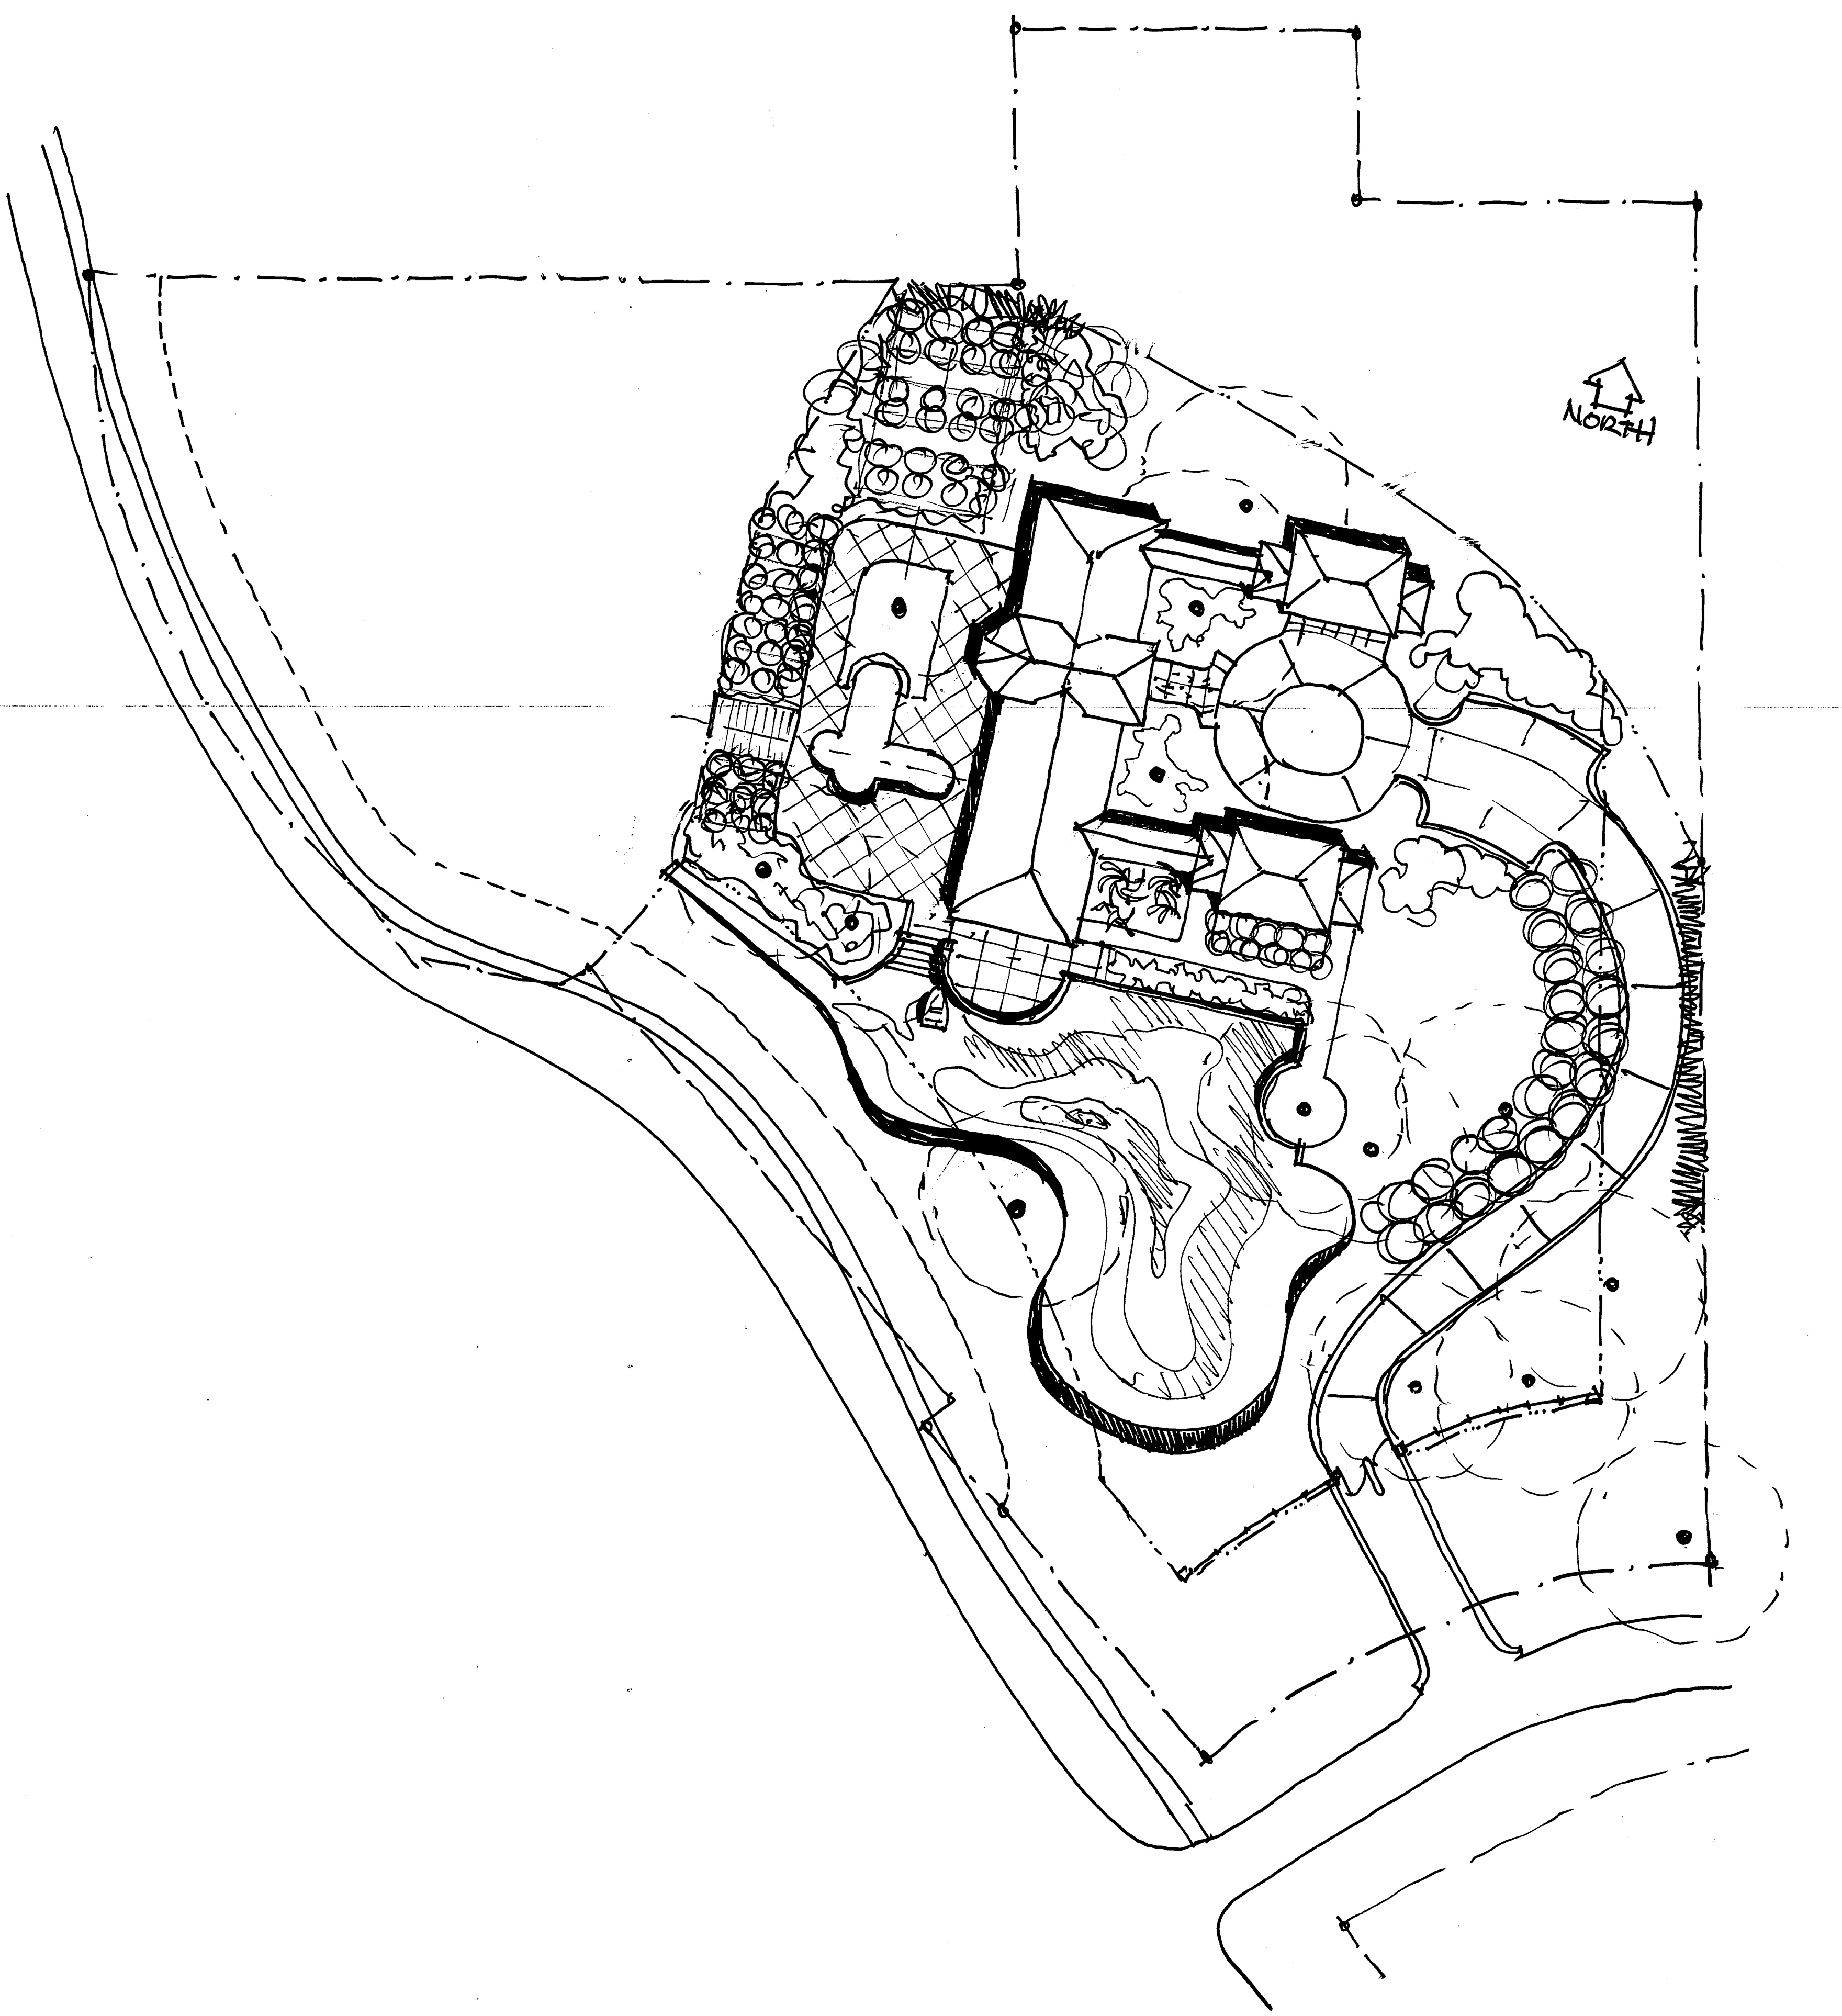 The Grove site plan features 8,000 sq.ft. five bedroom, six and one half bath, Mediterranean plan incorporates gracious arched loggias, courtyards & vaulted beamed ceilings